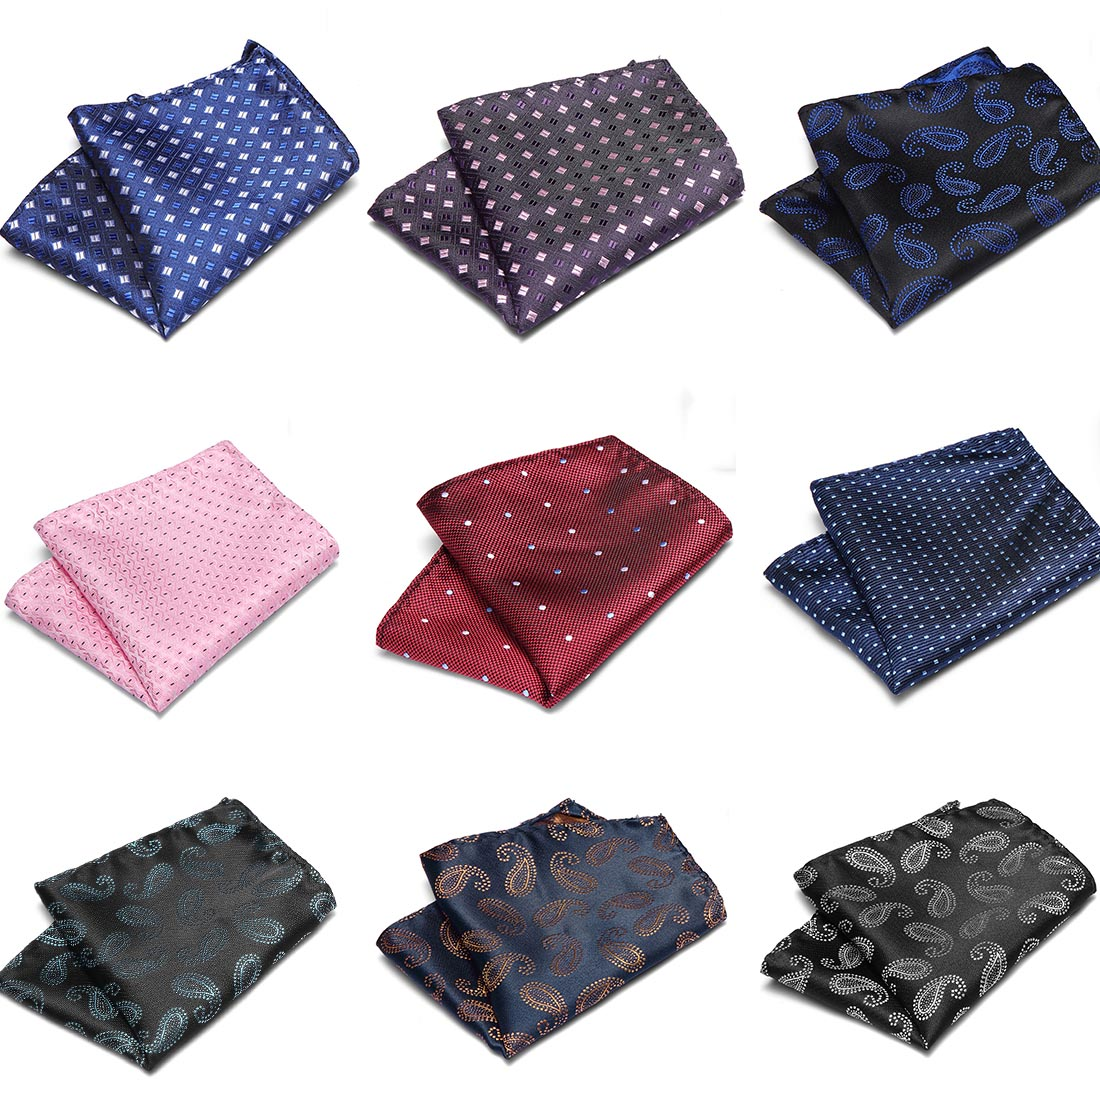 Men's Handkerchief Polka Dot Striped Floral Printed Hankies Silk Hanky Business Wedding Pocket Square Chest Towel 22*22CM